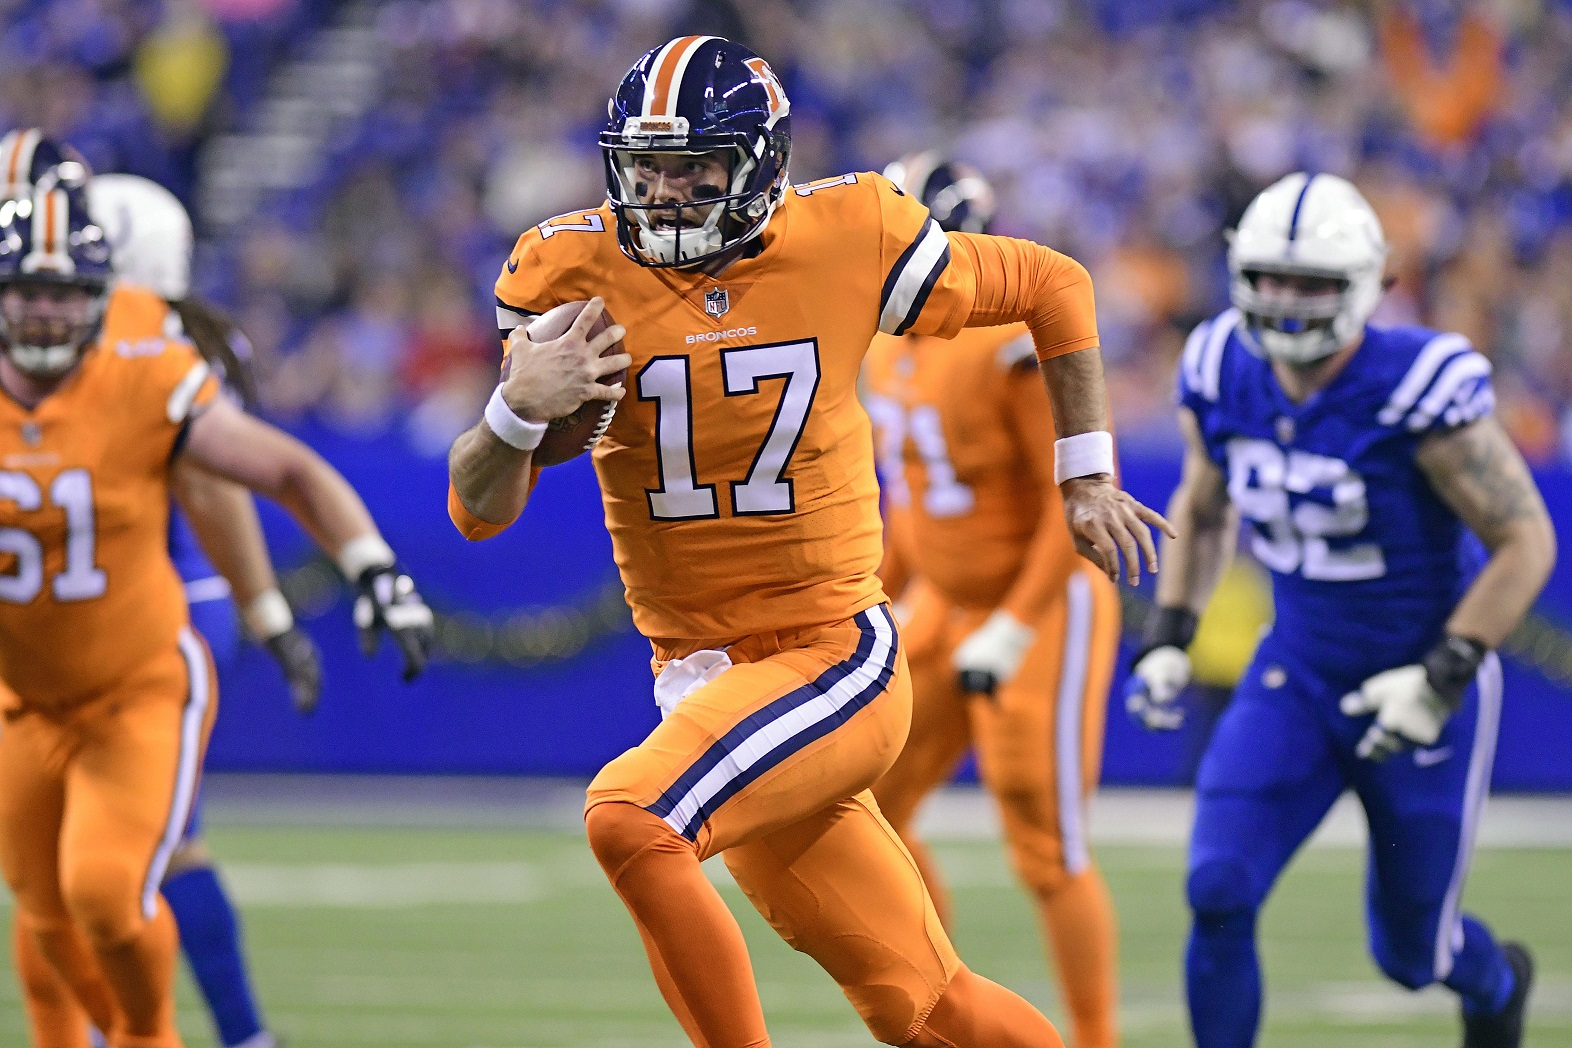 Brock Osweiler leads Broncos to victory in relief of Siemian